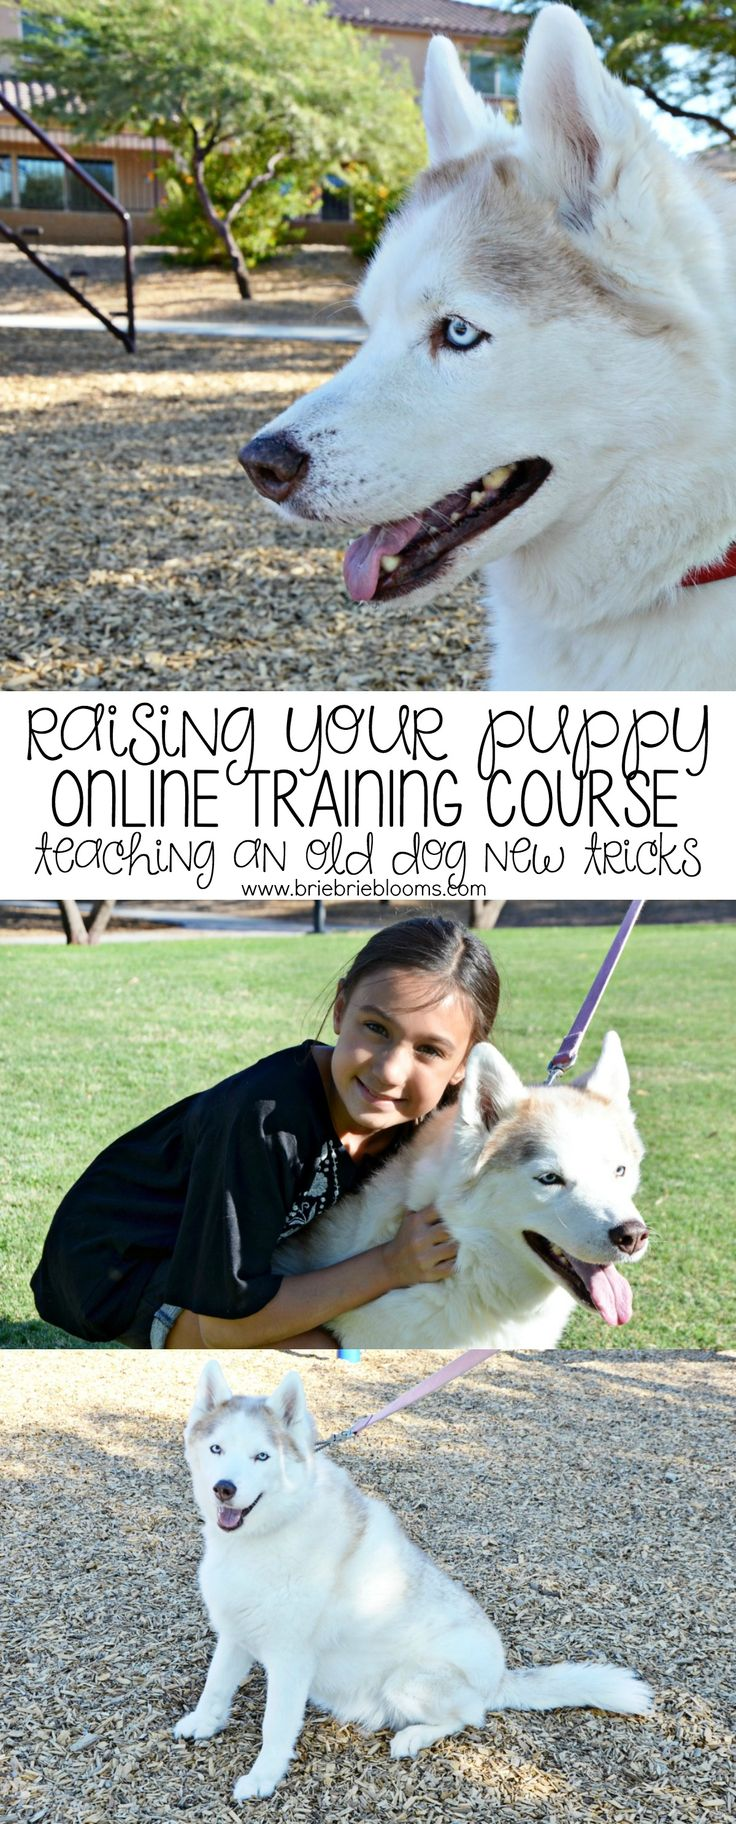 Robin K Bennett's Raising Your Puppy™ online dog training course is excellent for families with a new puppy or working on teaching an old dog new tricks. #raisingpuppy #ad